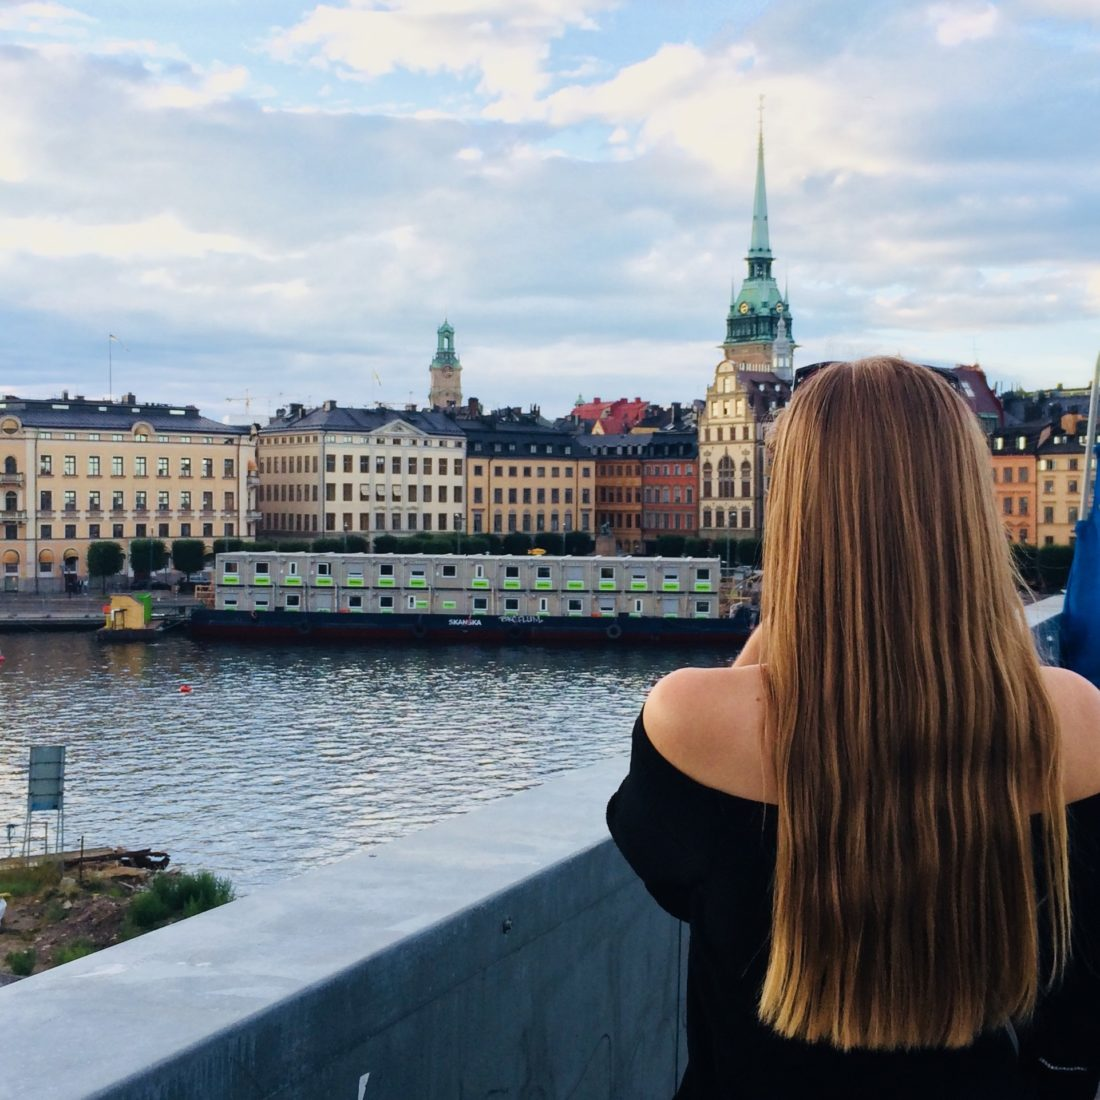 My friend looking at the Old Town/ Credit: Katharina